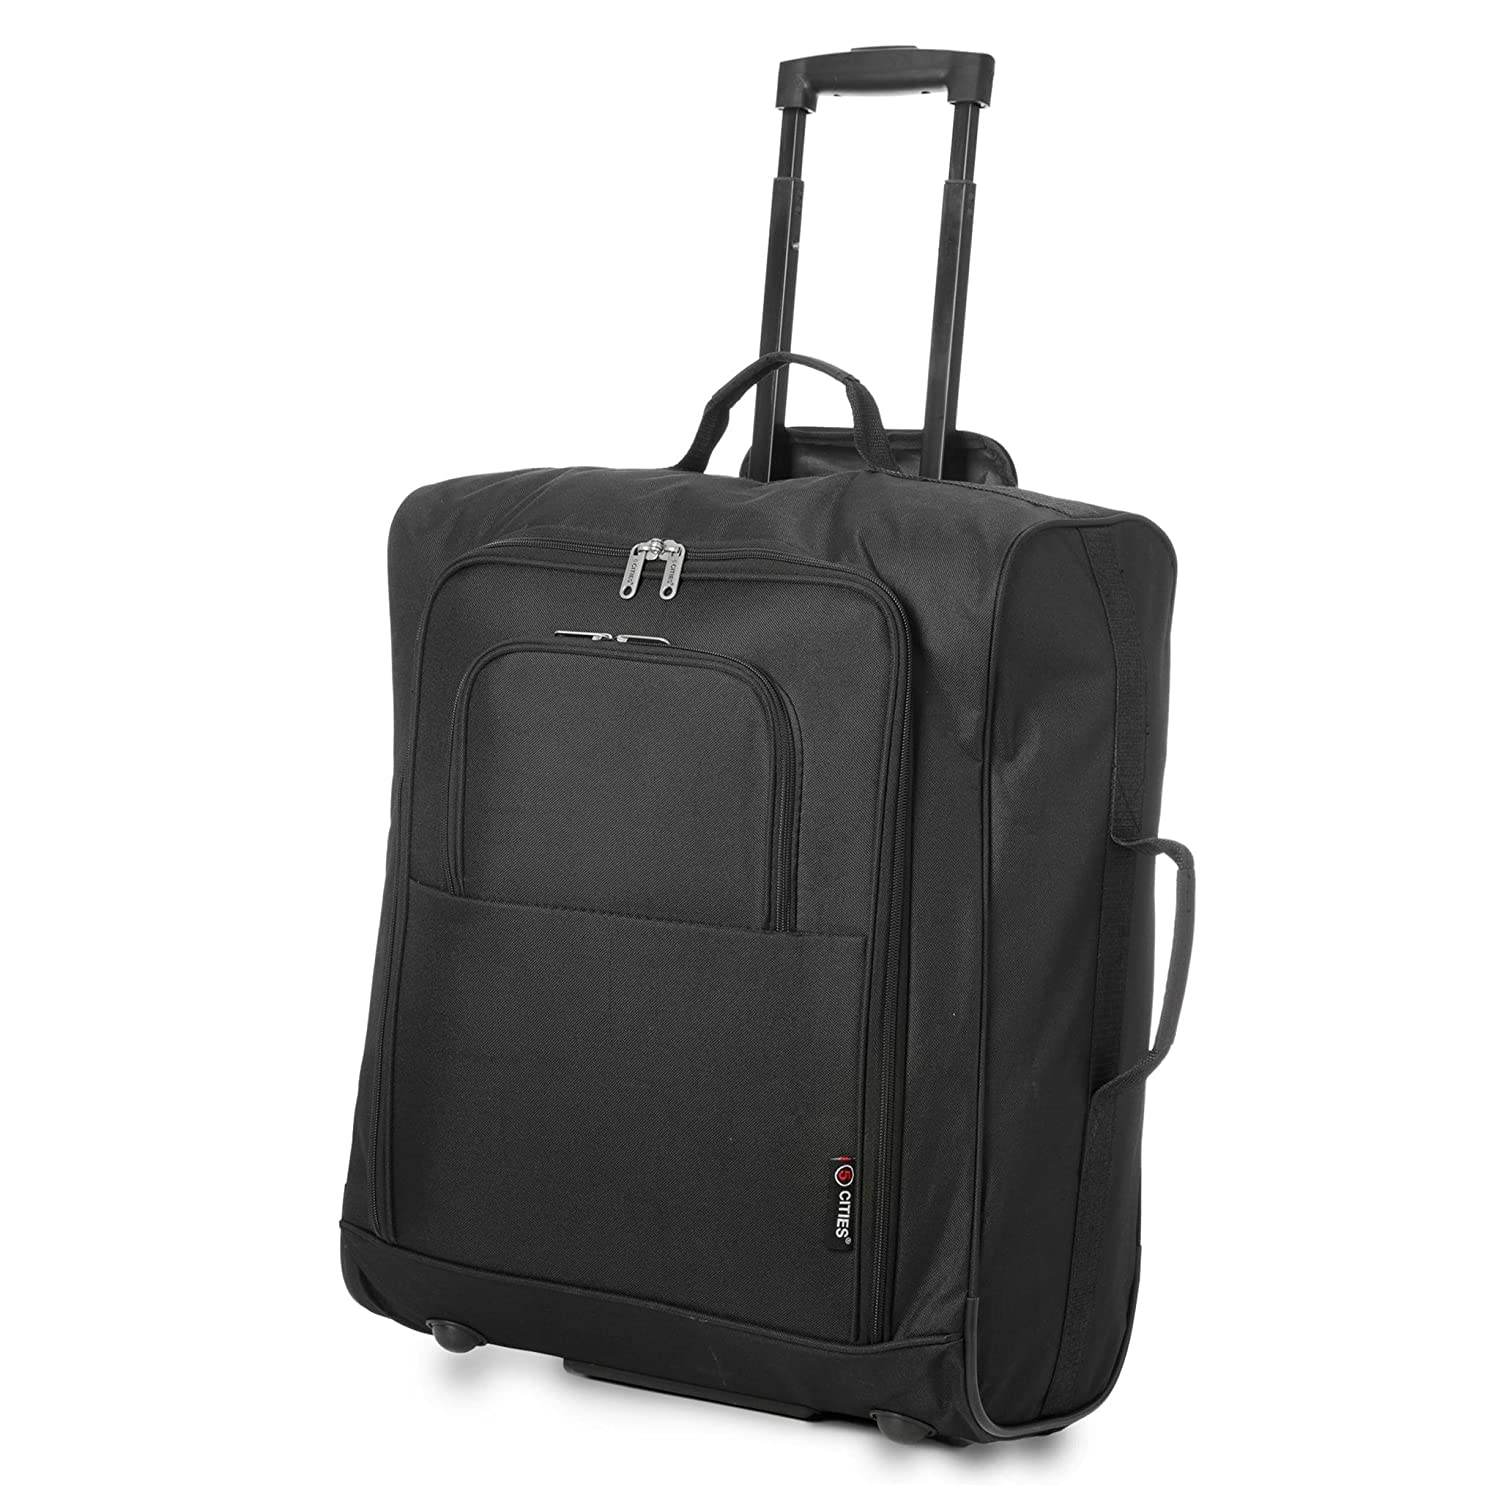 723983700 5 Cities Easyjet, British Airways, Jet2 56X45X25Cm Maximum Cabin Approved Trolley  Bag Hand Luggage, 56 cm, 60.0 L, Black